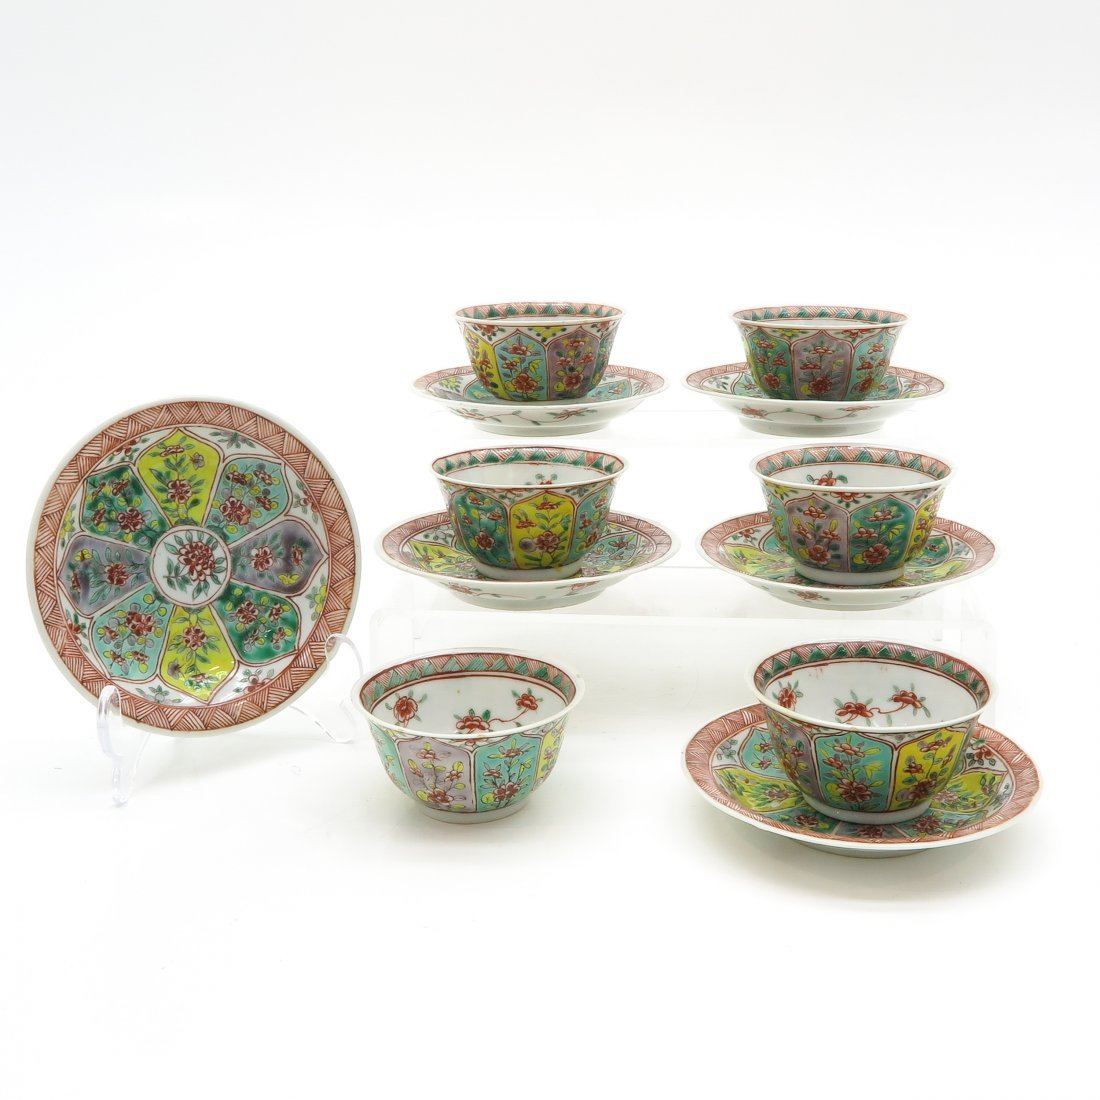 Lot of China Porcelain Cups and Saucers